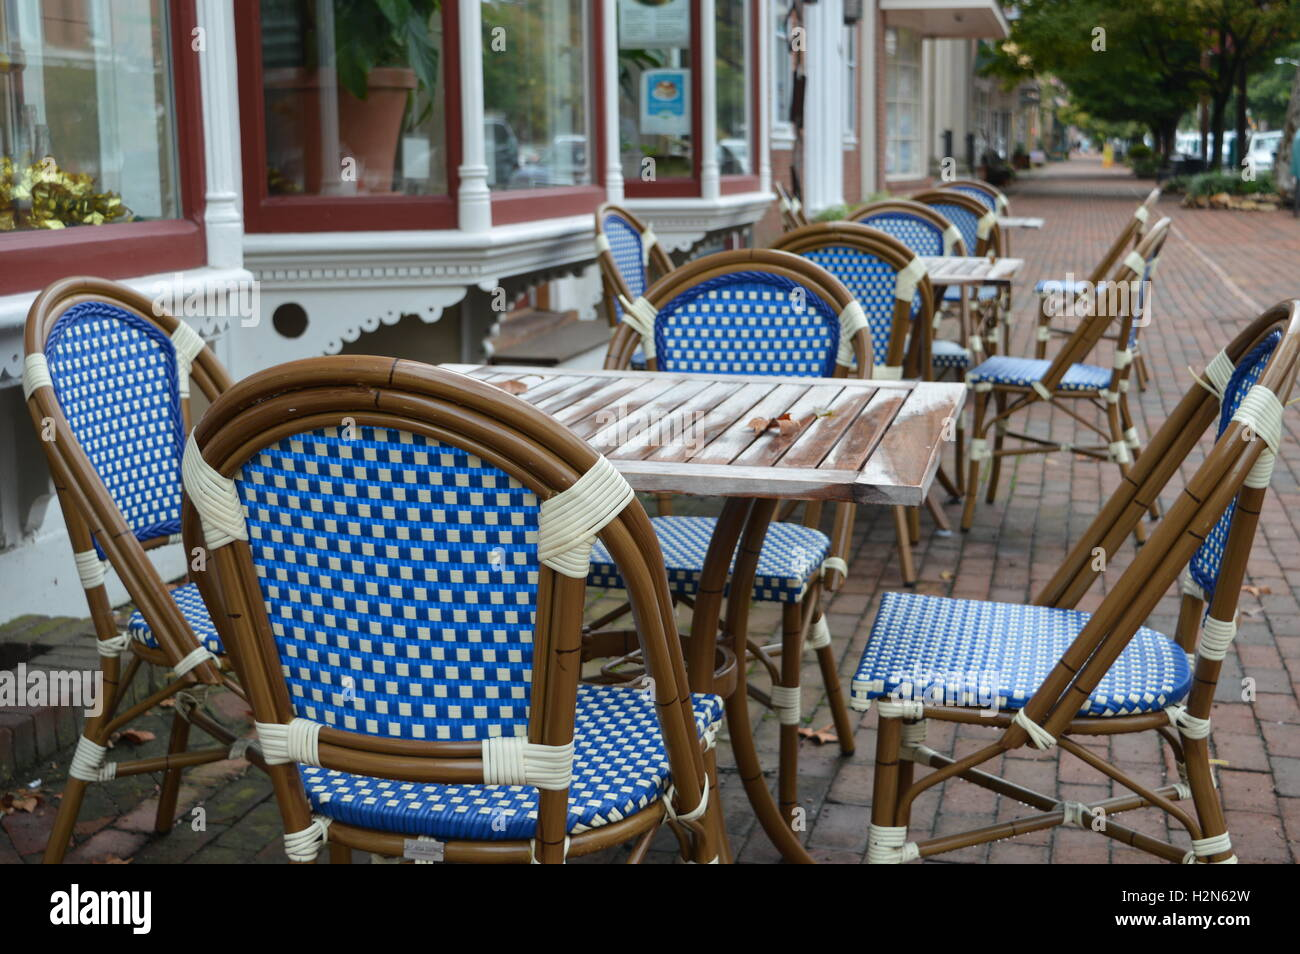 Woven Chairs Stock Photos & Woven Chairs Stock Images - Alamy